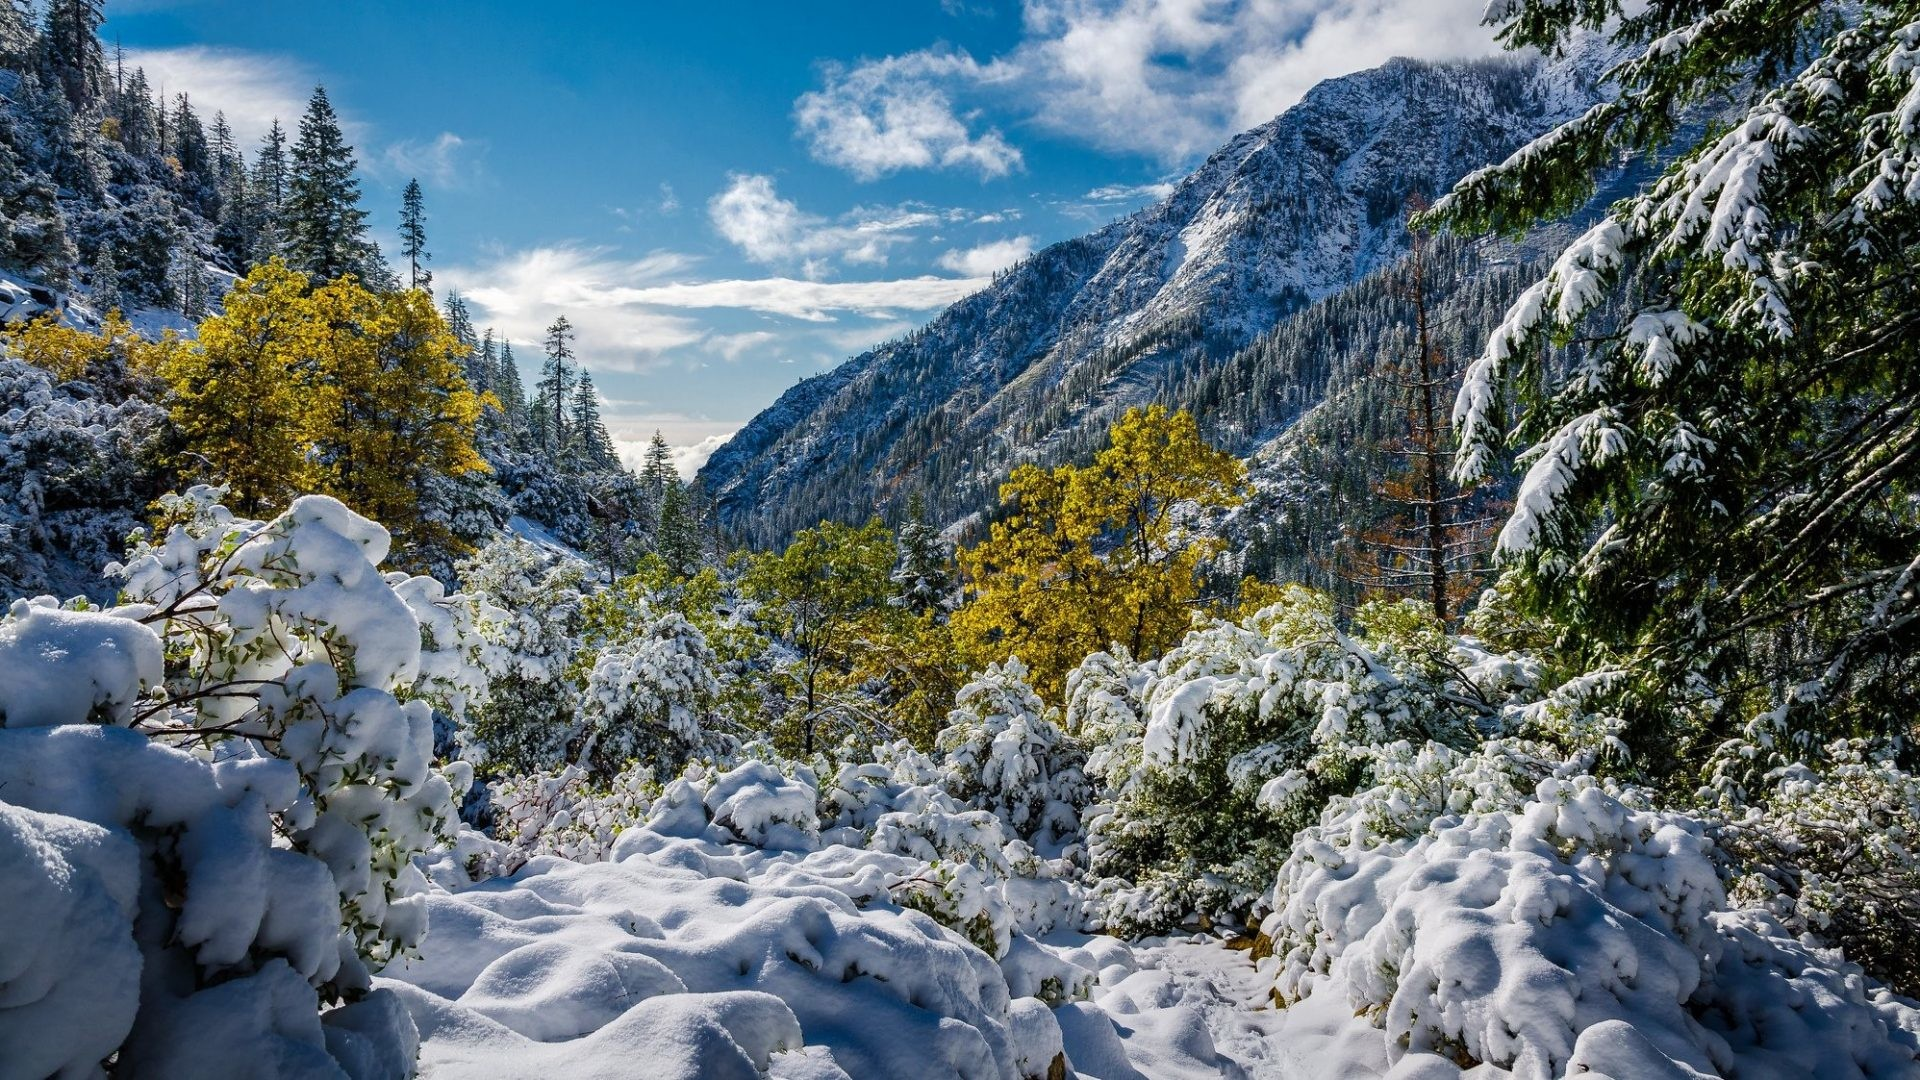 Mountains – Snow Winter Landscape Nature Live Wallpaper Android Free  Download for HD 16:9